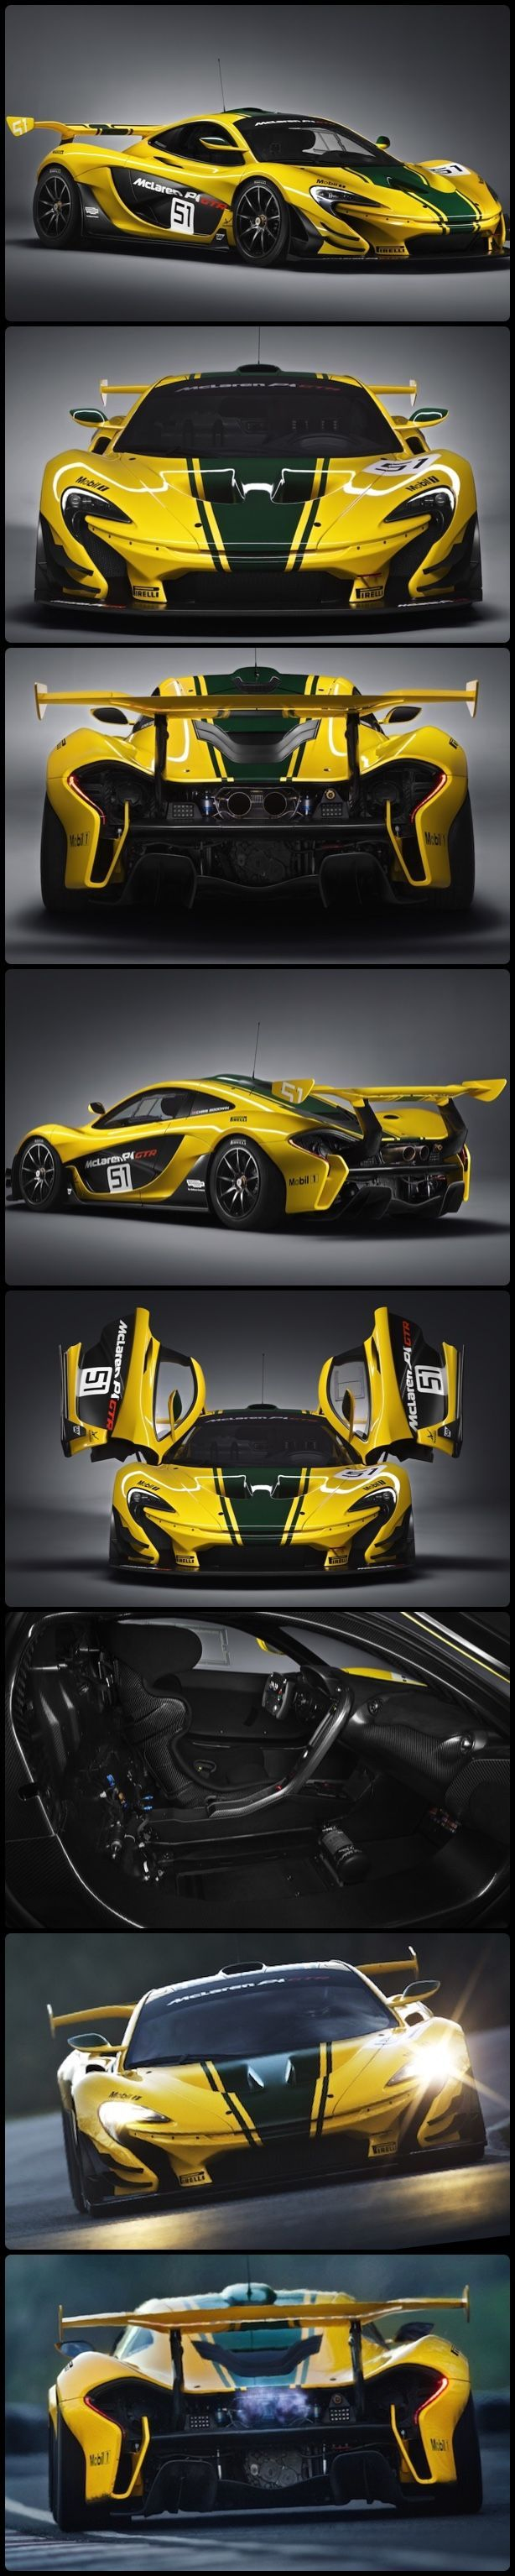 McLaren P1 GTR, a Limited Production - https://www.luxury.guugles.com/mclaren-p1-gtr-a-limited-production-2/